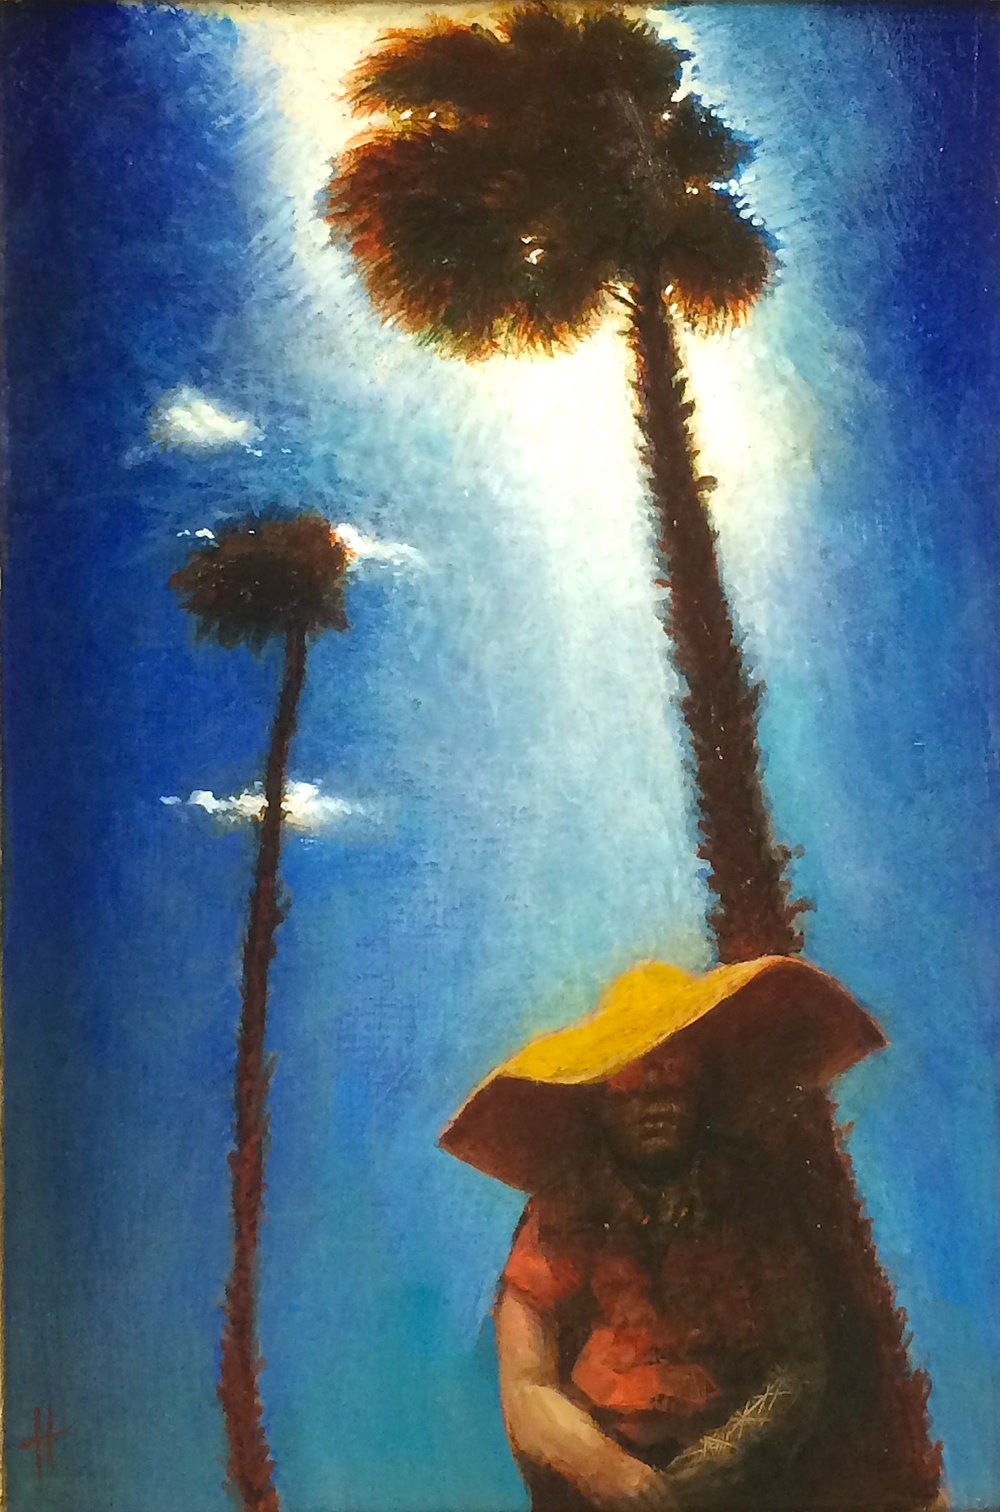 Title: Malaga  Size: 25.5 x 17 cm  Medium: Oil on panel  Price: £1,550